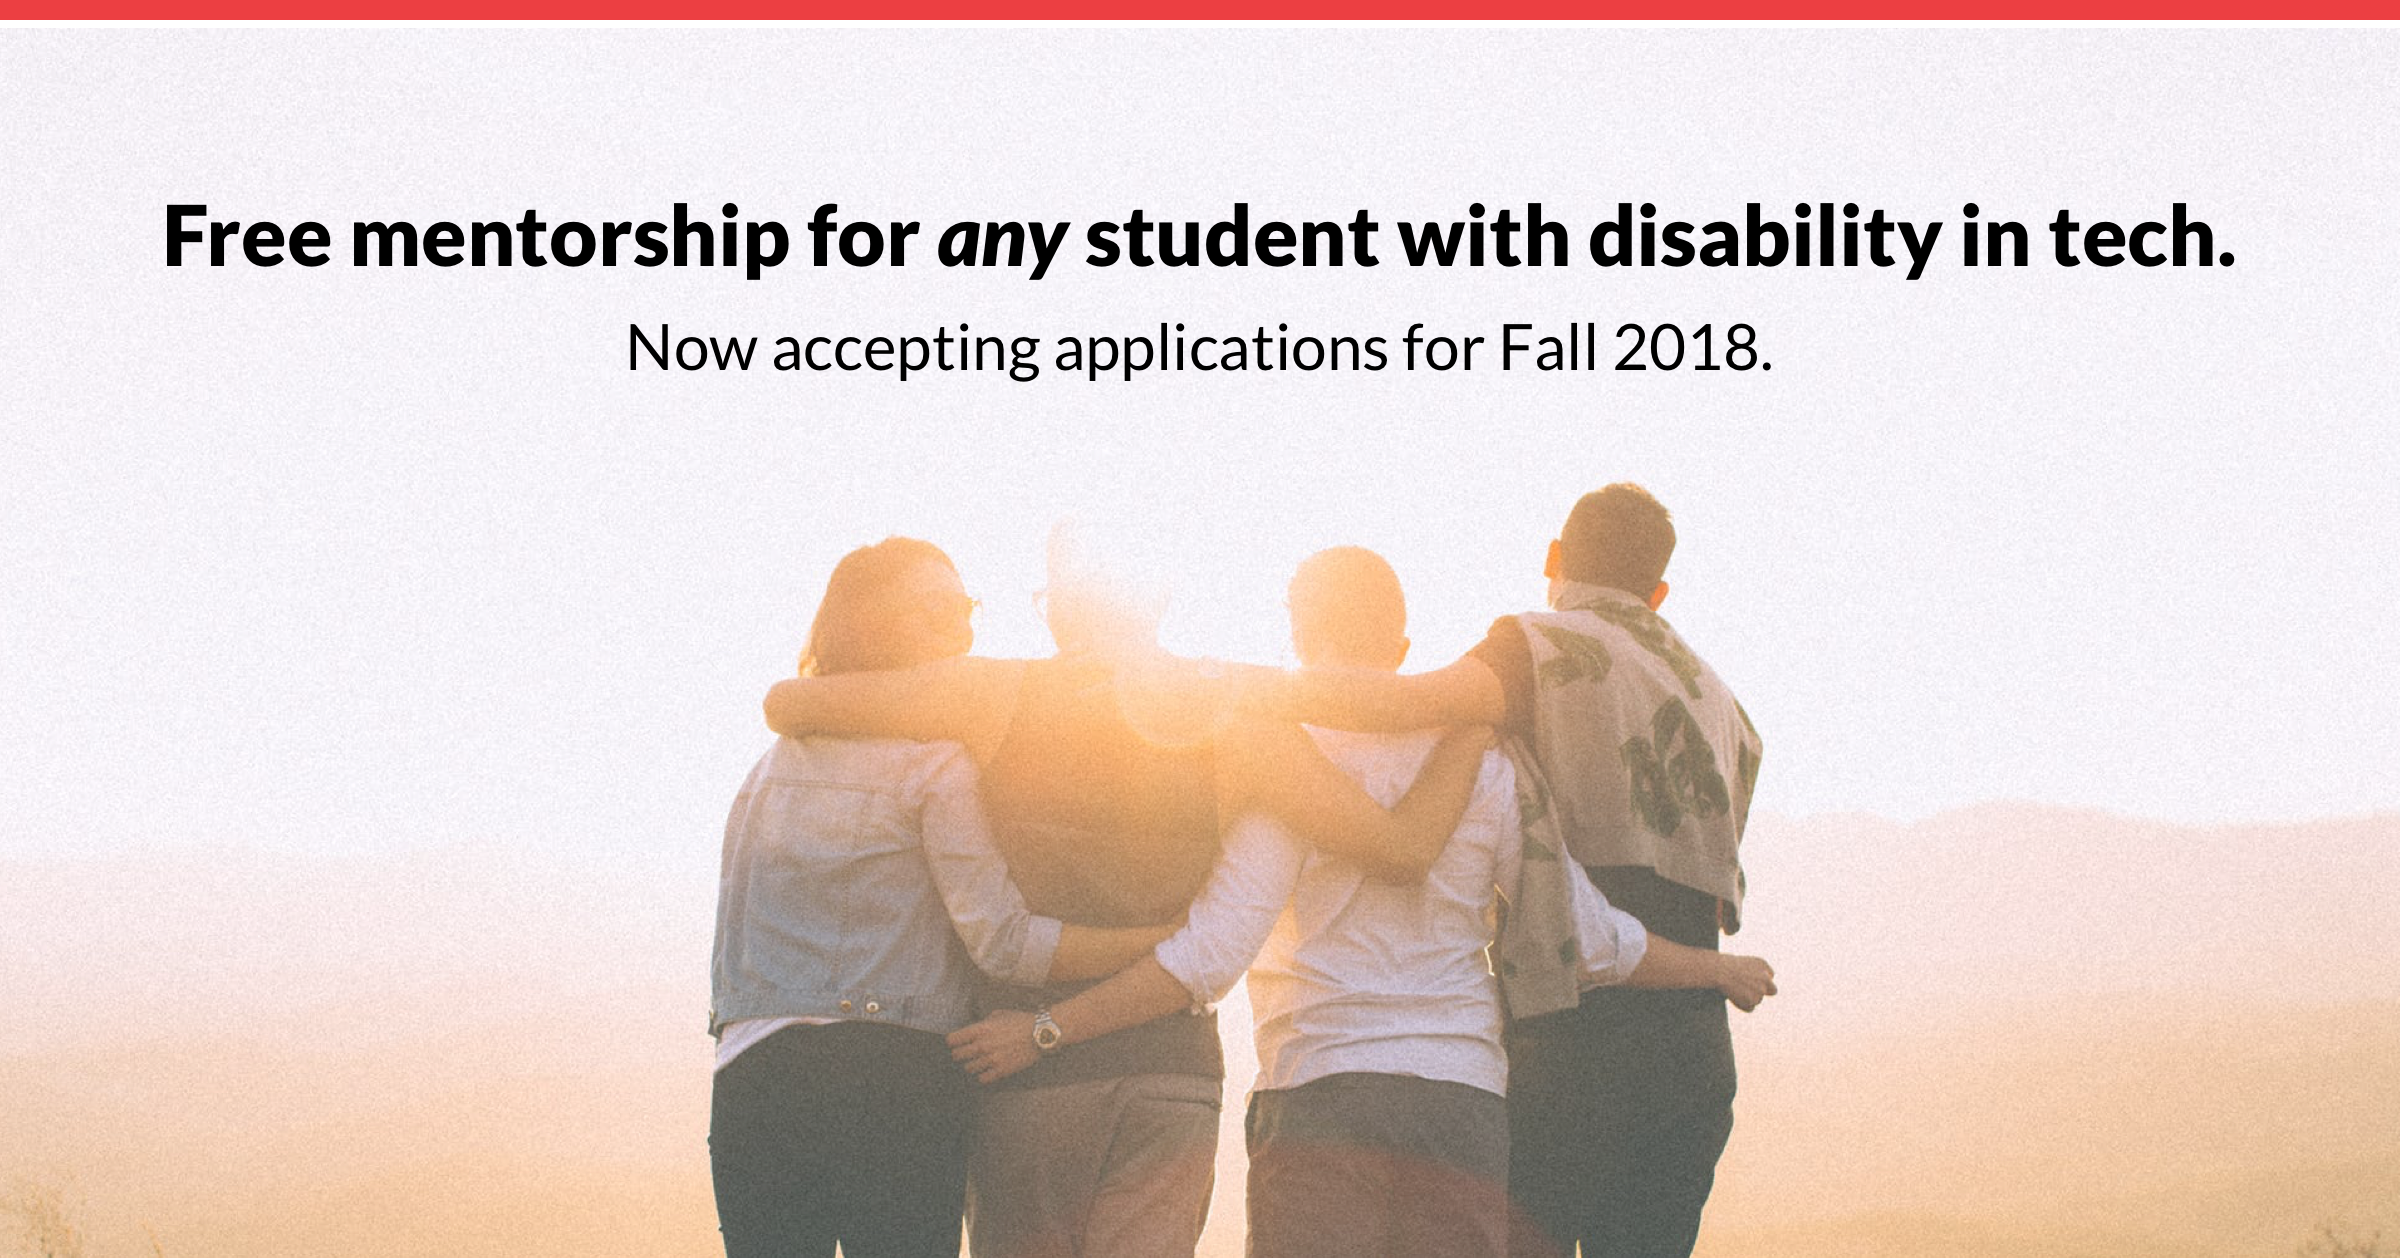 Free mentorship for any student with disability in tech in US & Canada. Now accepting applications for Fall 2018.